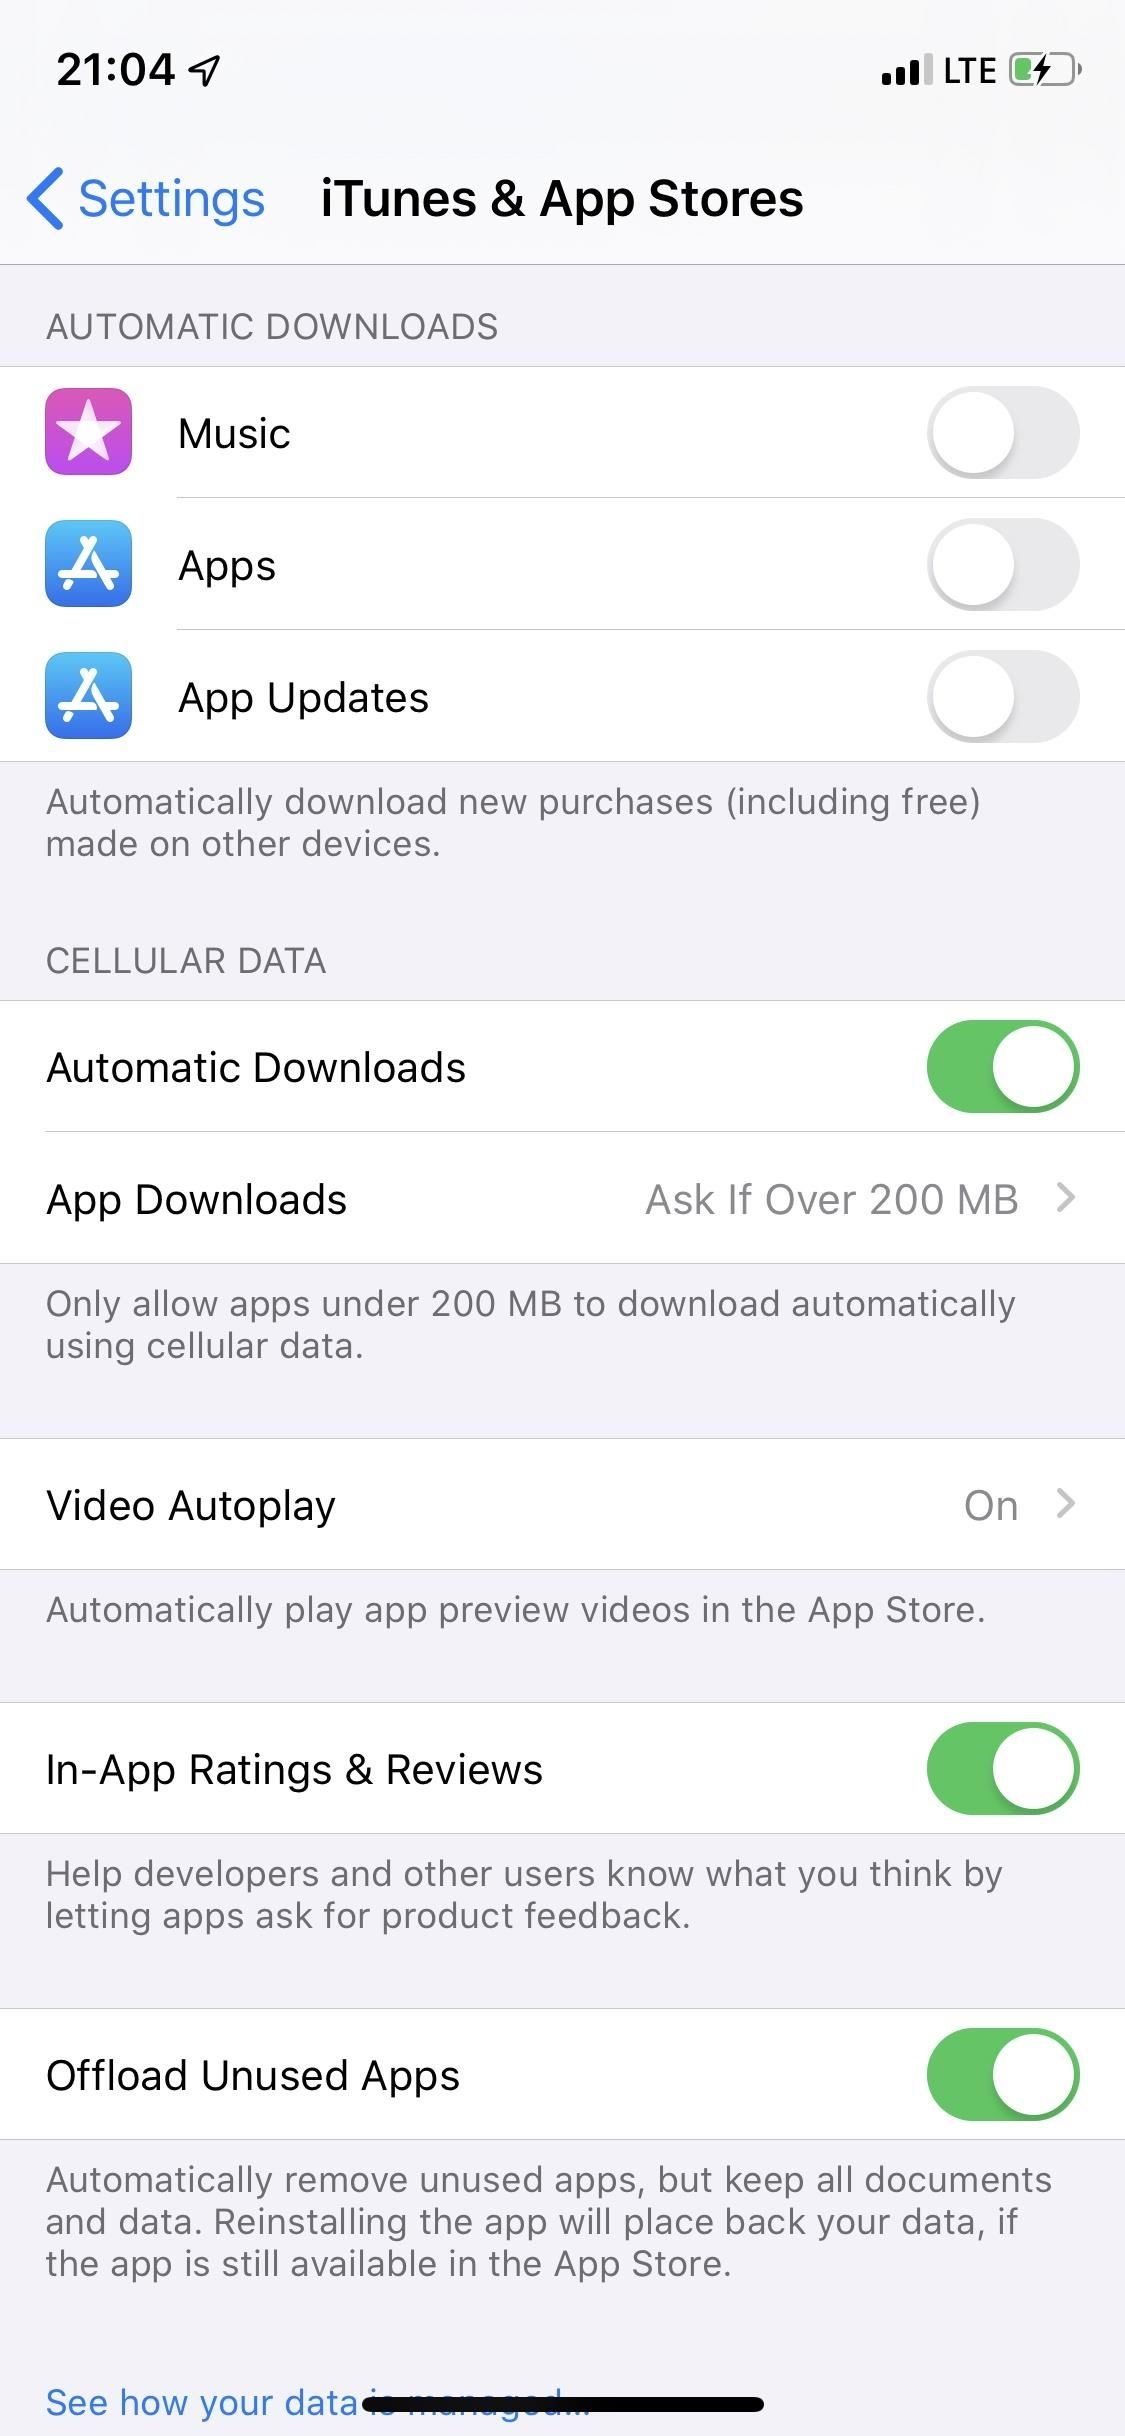 Download Apps of Any Size Using Cellular Data on Your iPhone in iOS